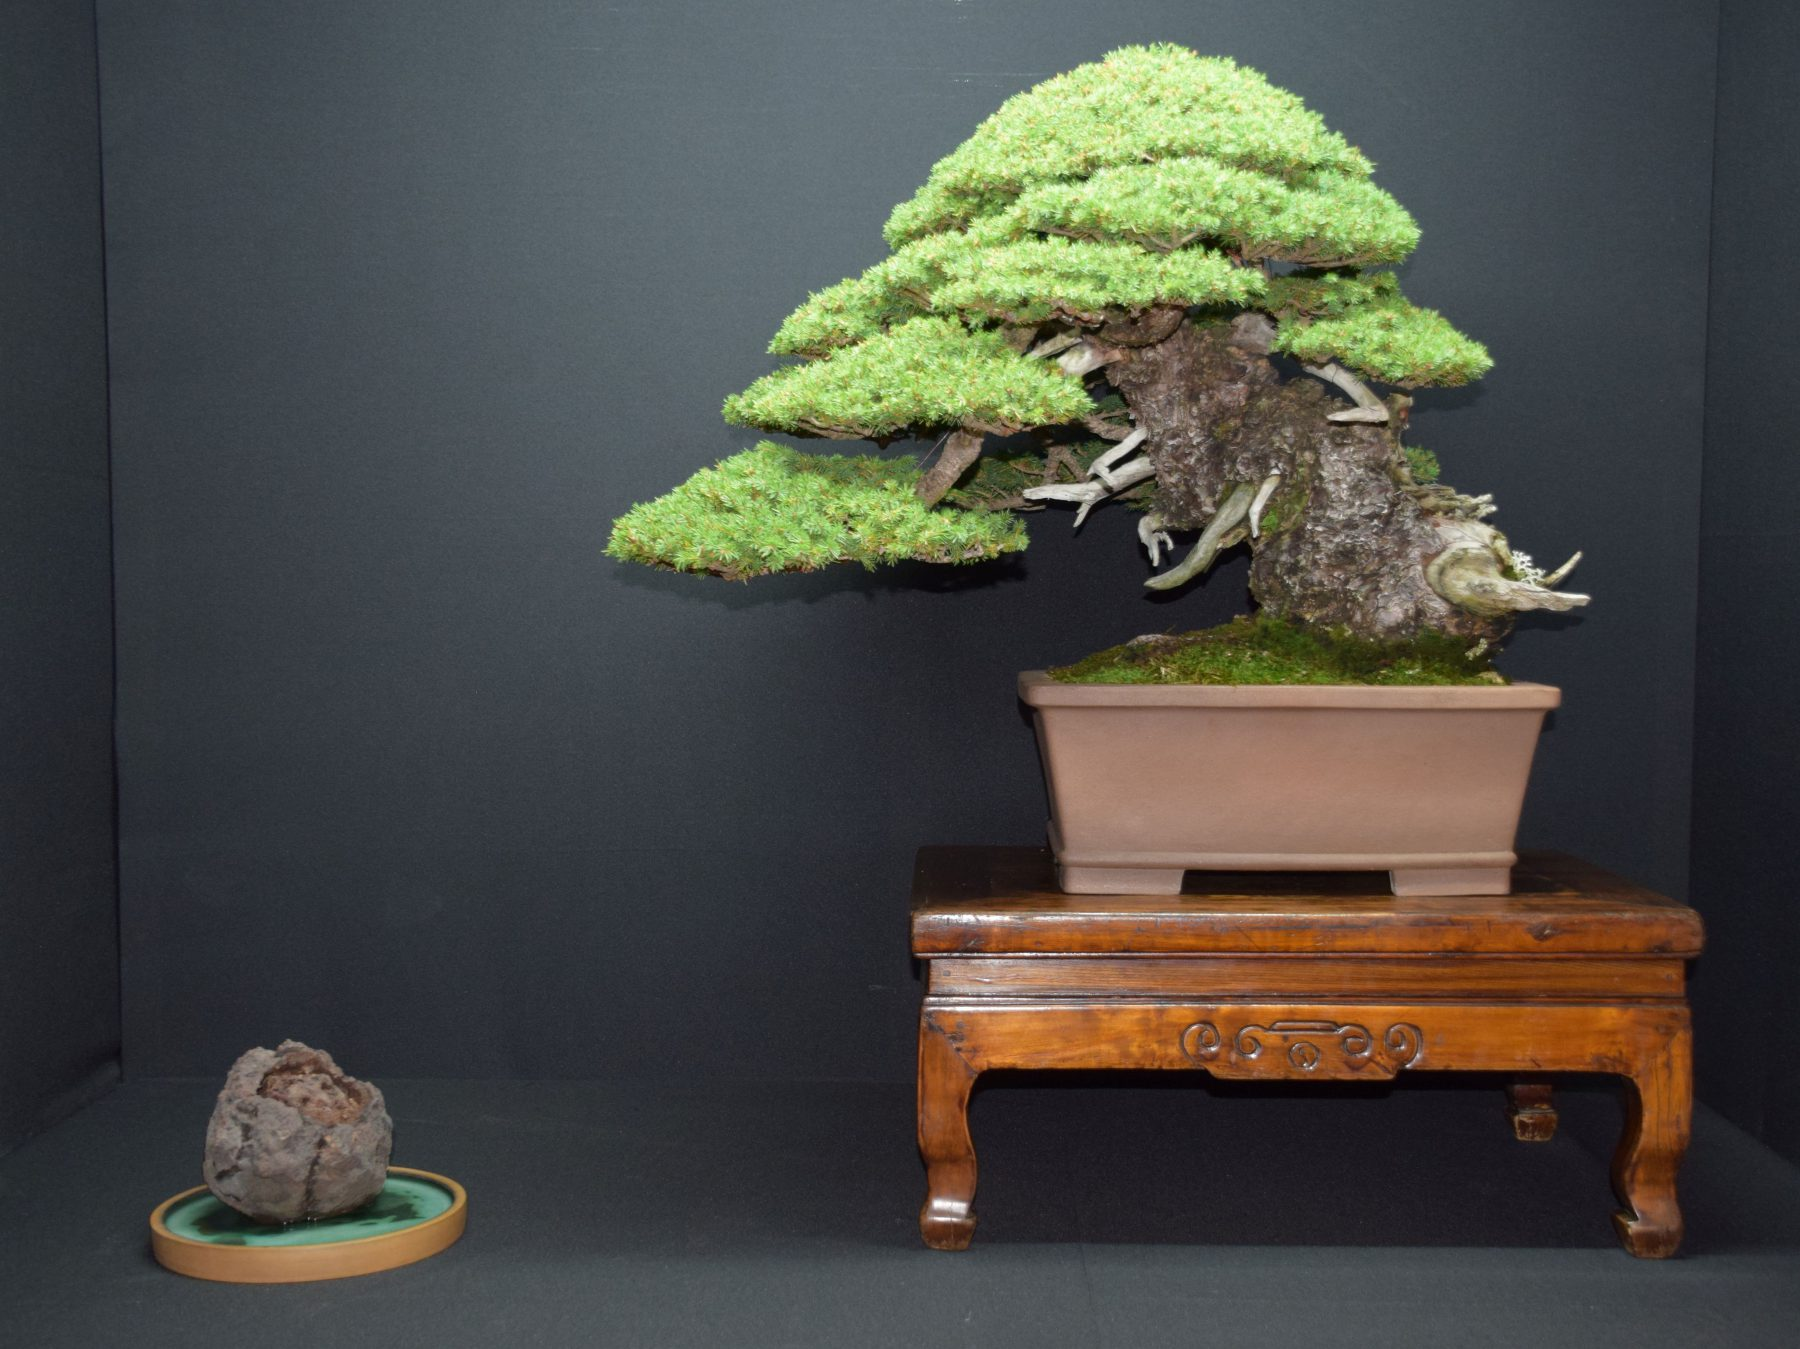 bonsai-museum-luis-vallejo-004